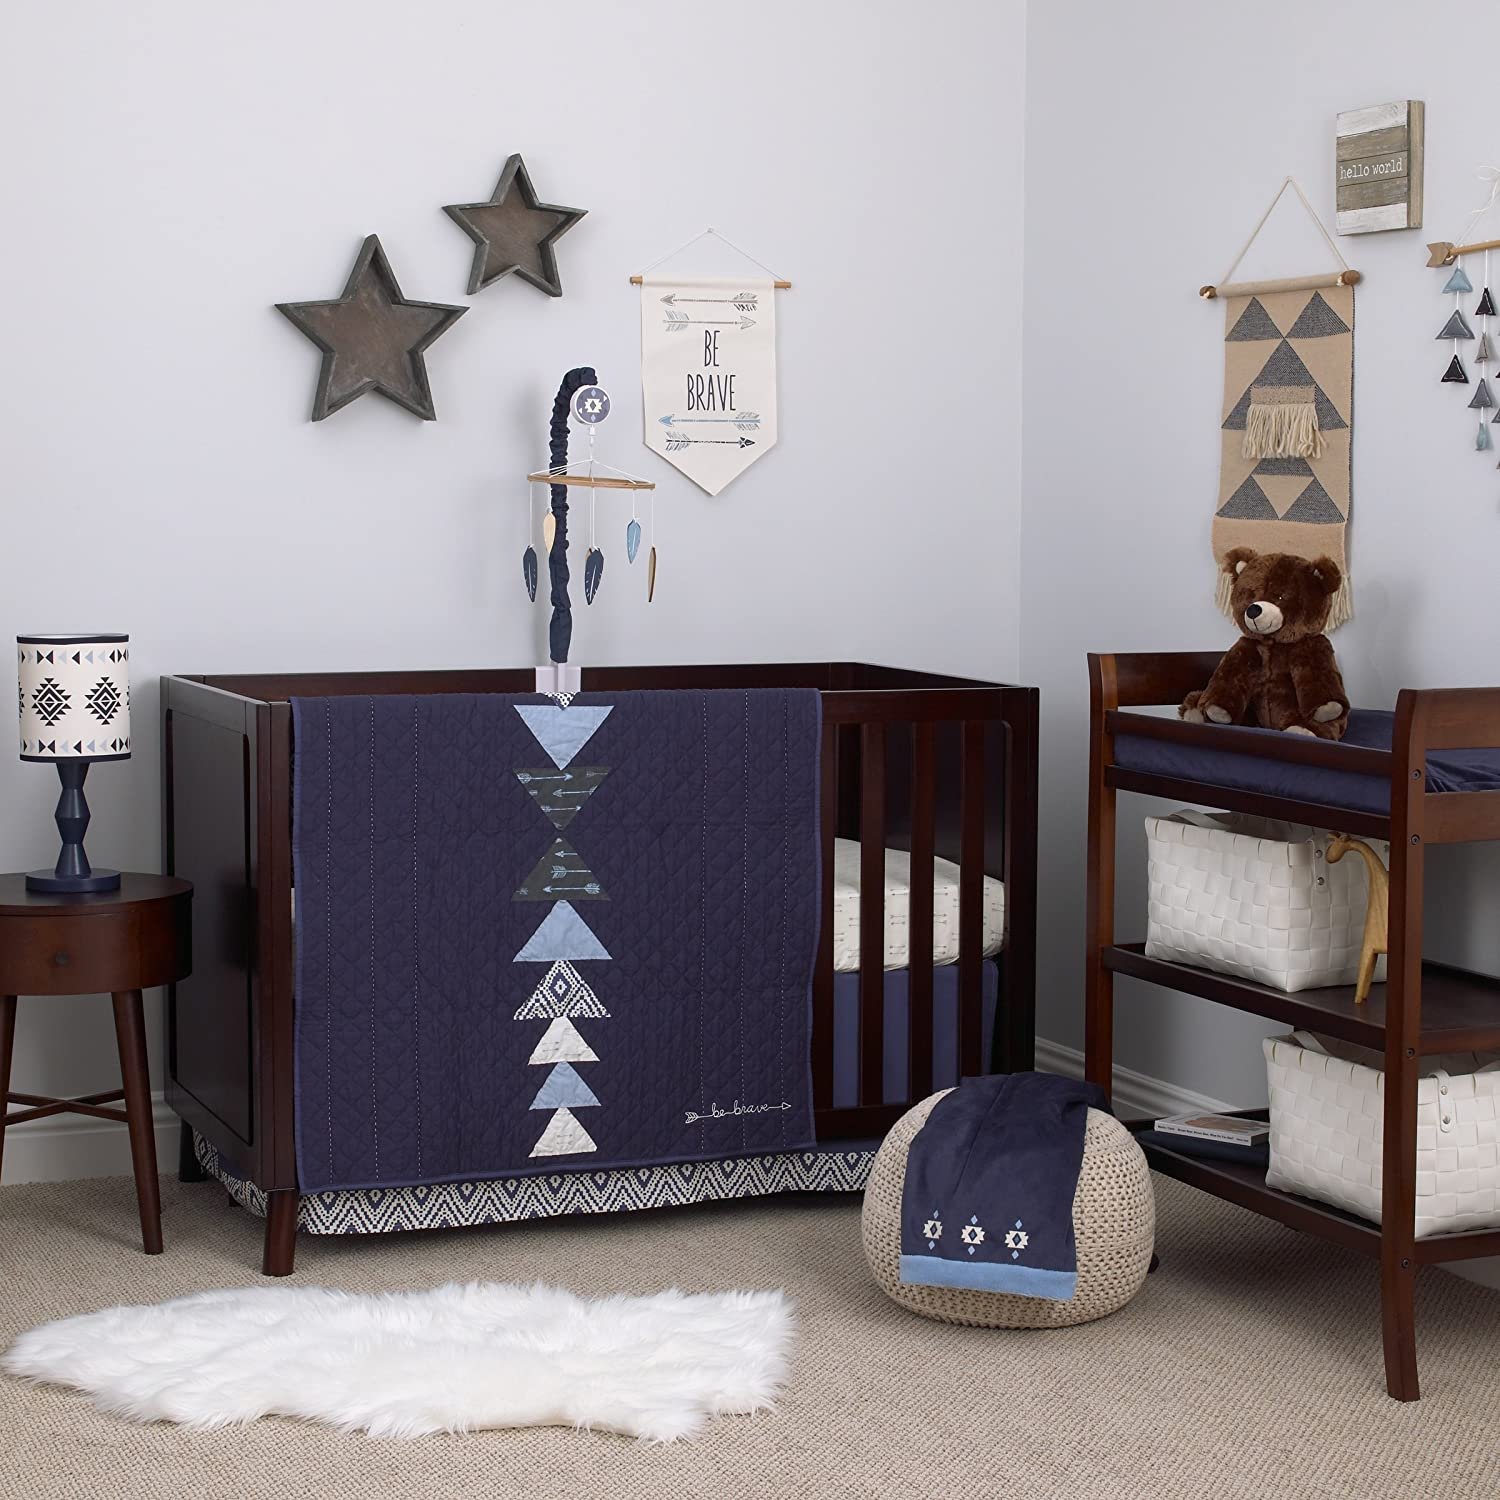 Carter's - Be Brave - 3-Piece Crib Bedding Set/Navy/ Light Blue/White Crown Crafts Infant Products 3825276